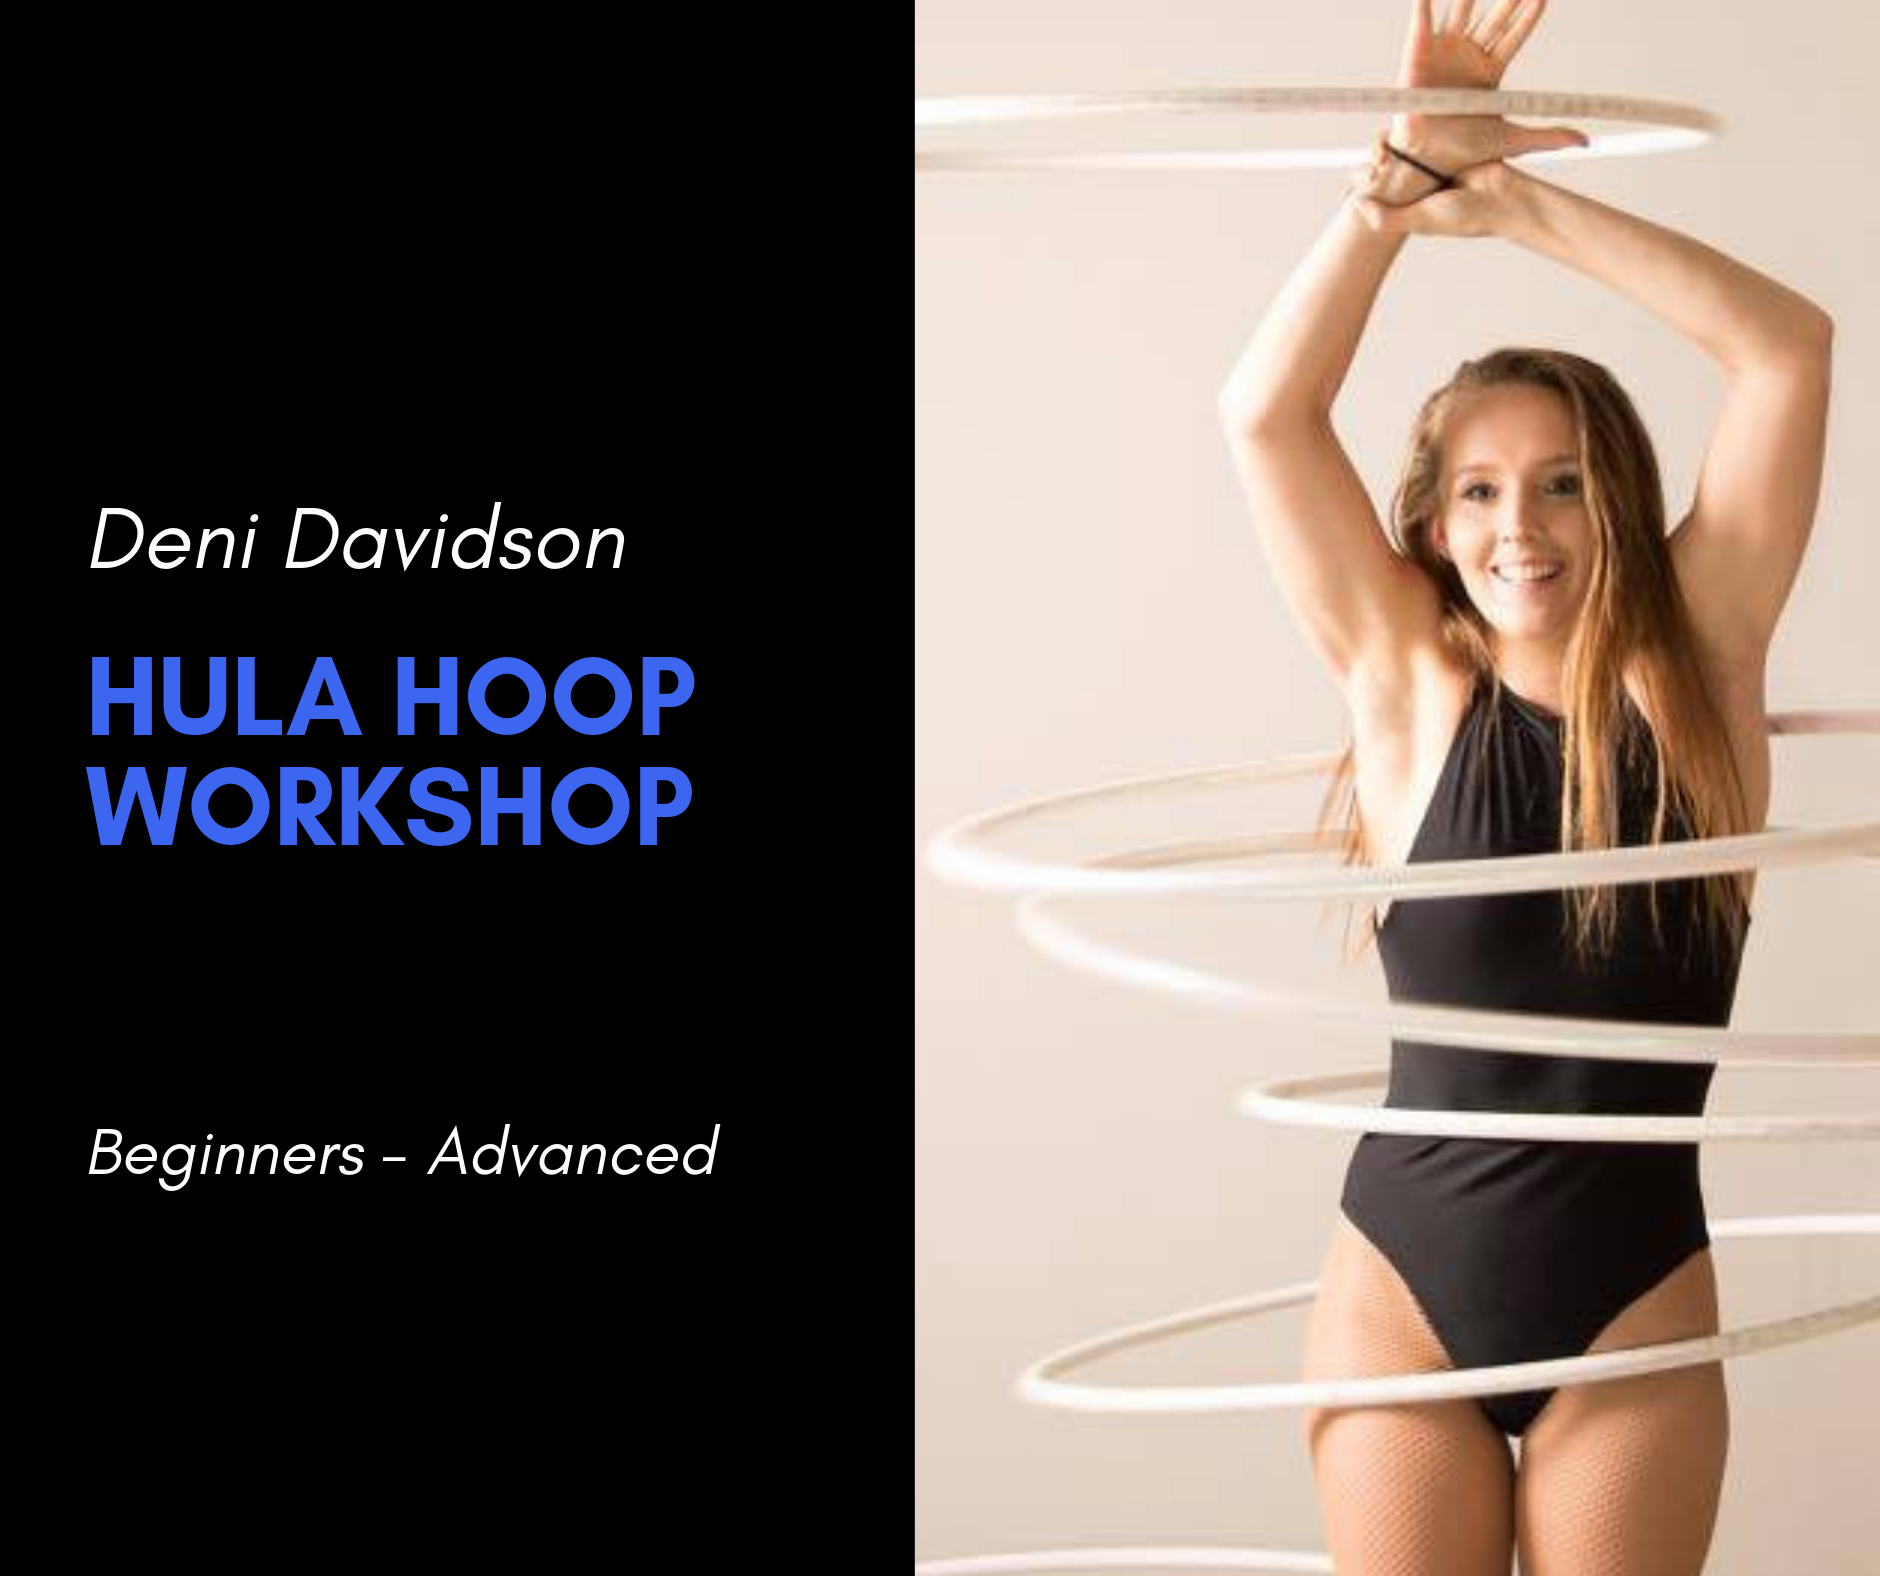 Deni Davidson Hula Hooping Workshop